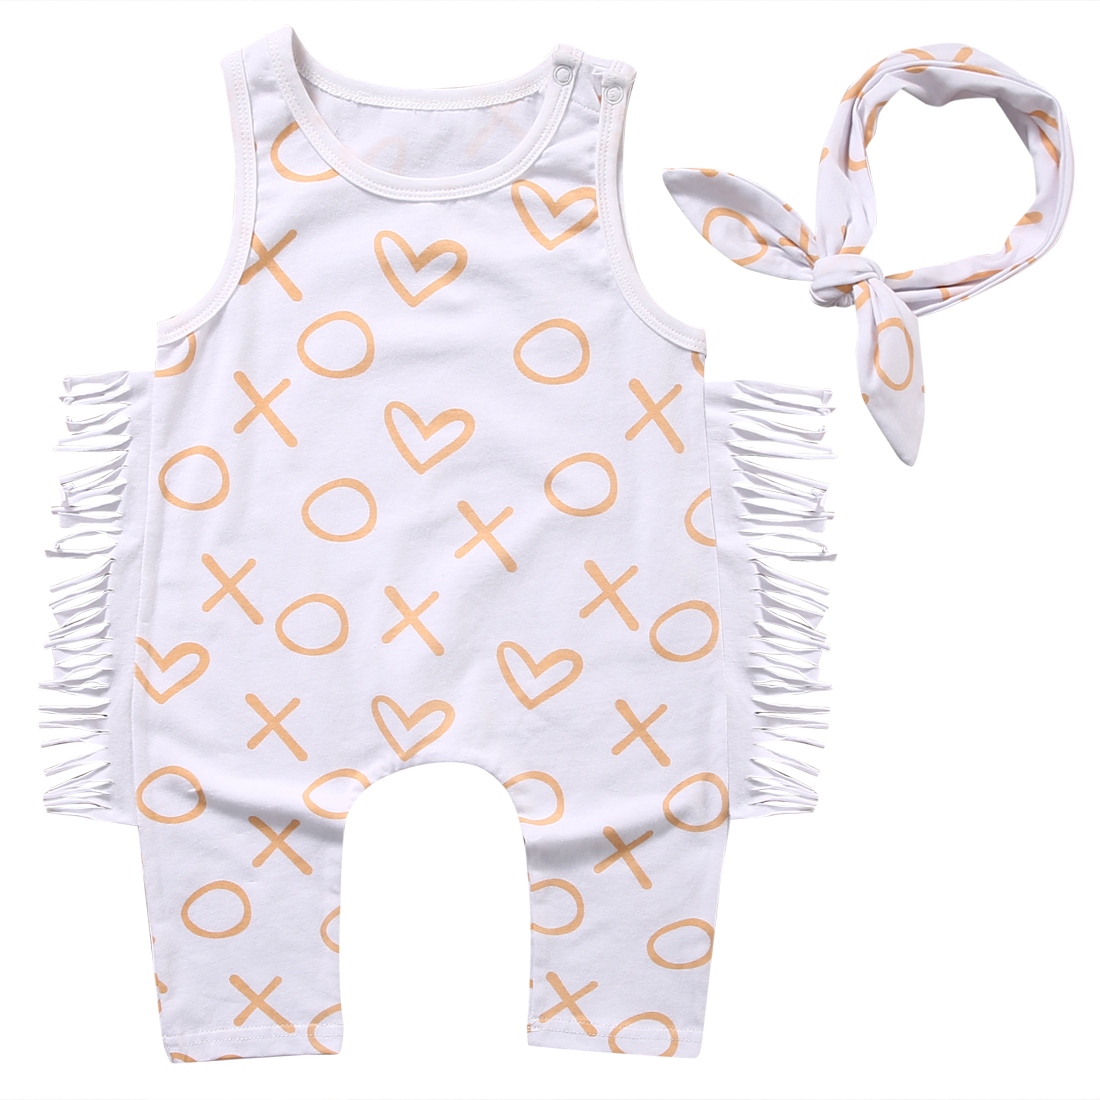 Summer Lovely Newborn Kids Baby Girls Clothes Sets Tassel Sleeveless Romper Jumpsuit Headband 2Pcs Outfits Clothes Set Clothing